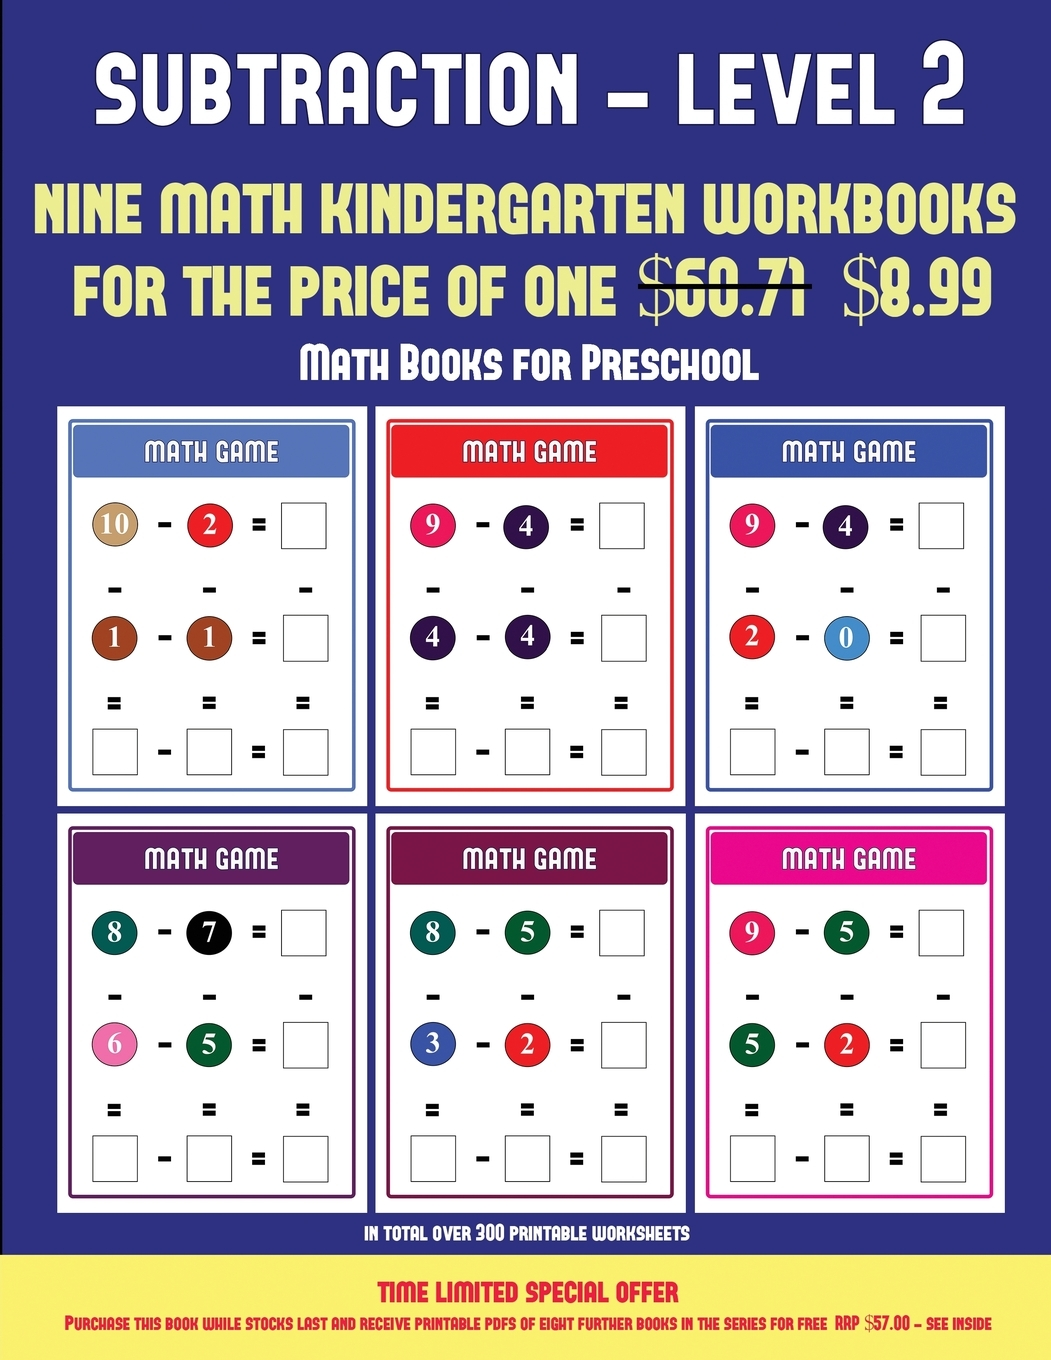 Math Books For Preschool Kindergarten Subtraction Taking